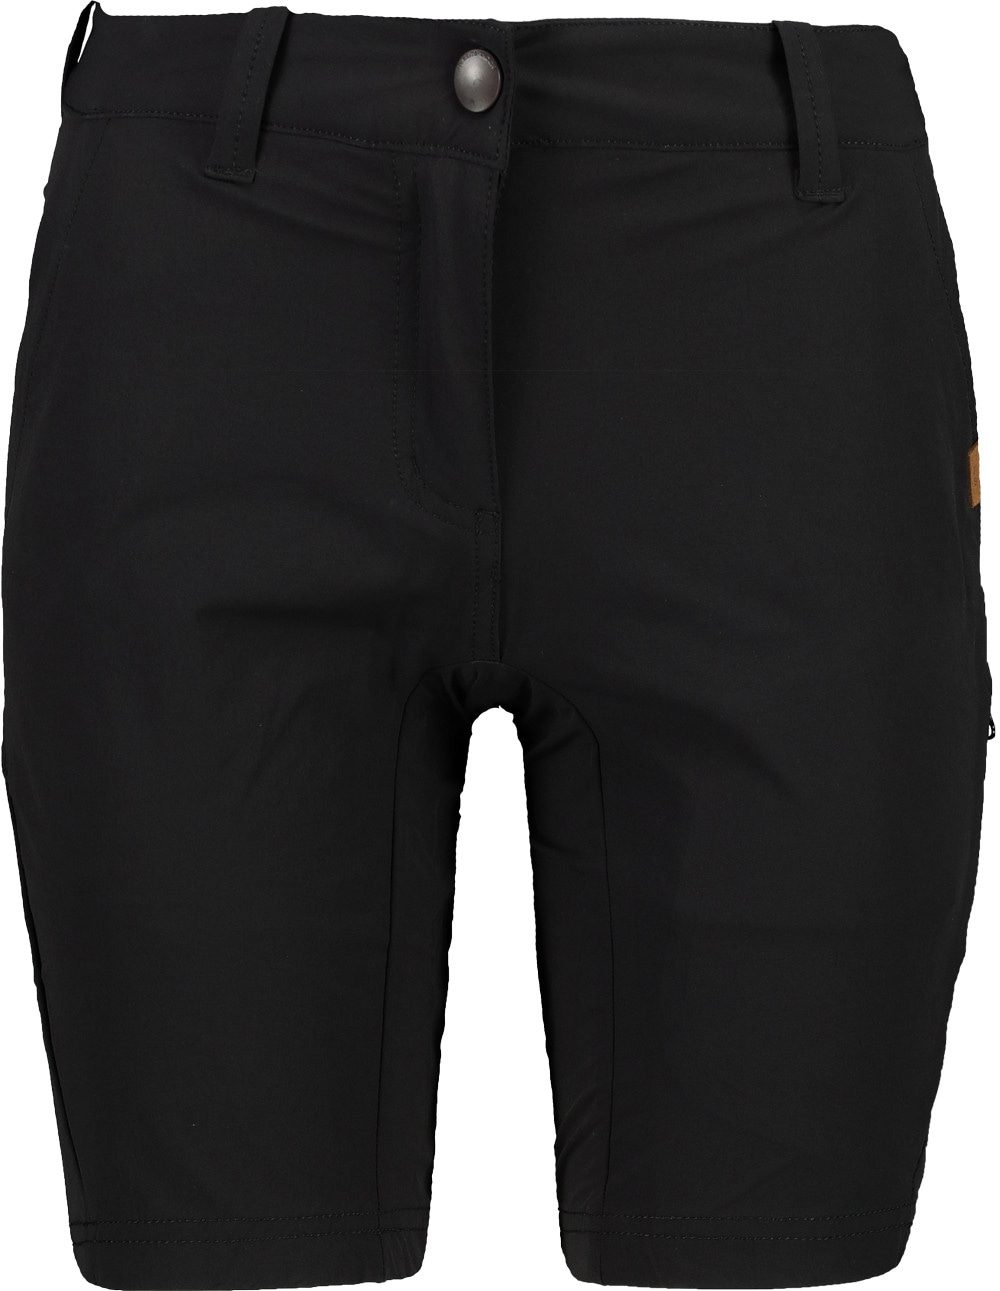 Women's shorts NORTHFINDER GERYA